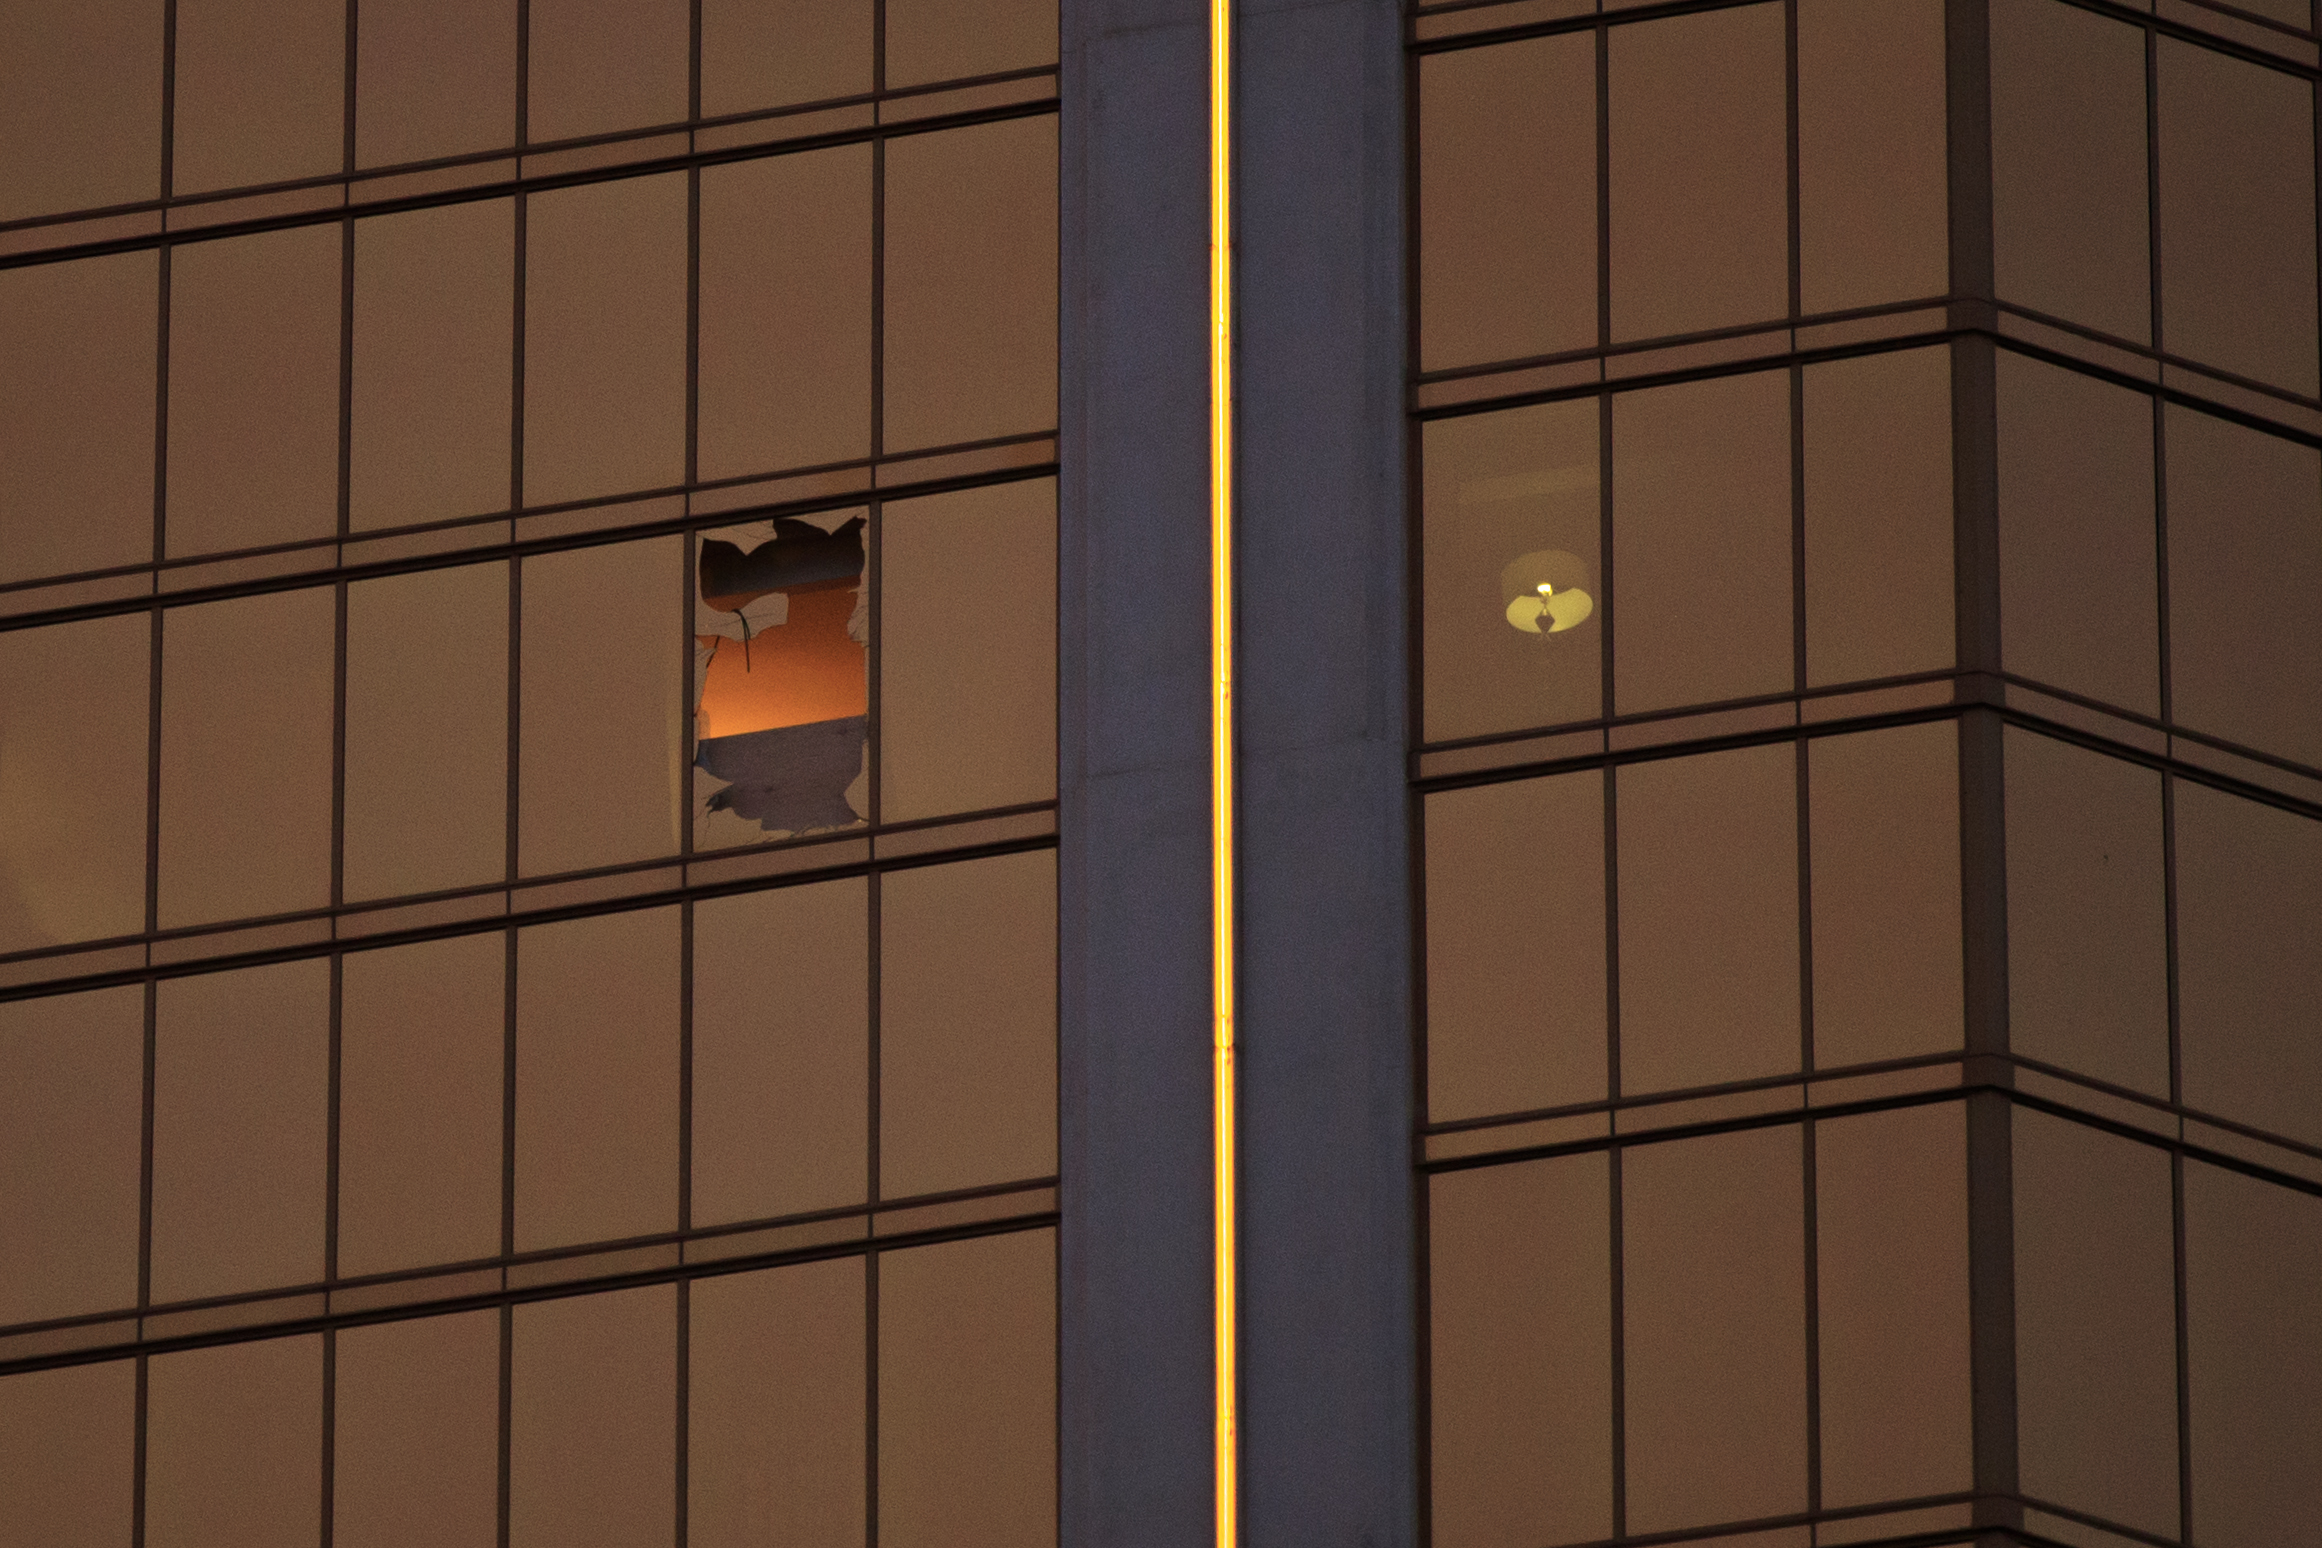 A window is broken on the 32nd floor of the Mandalay Bay Resort and Casino where a gunman opened fire on a concert crowd on Sunday night, Oct. 3, 2017 in Las Vegas.